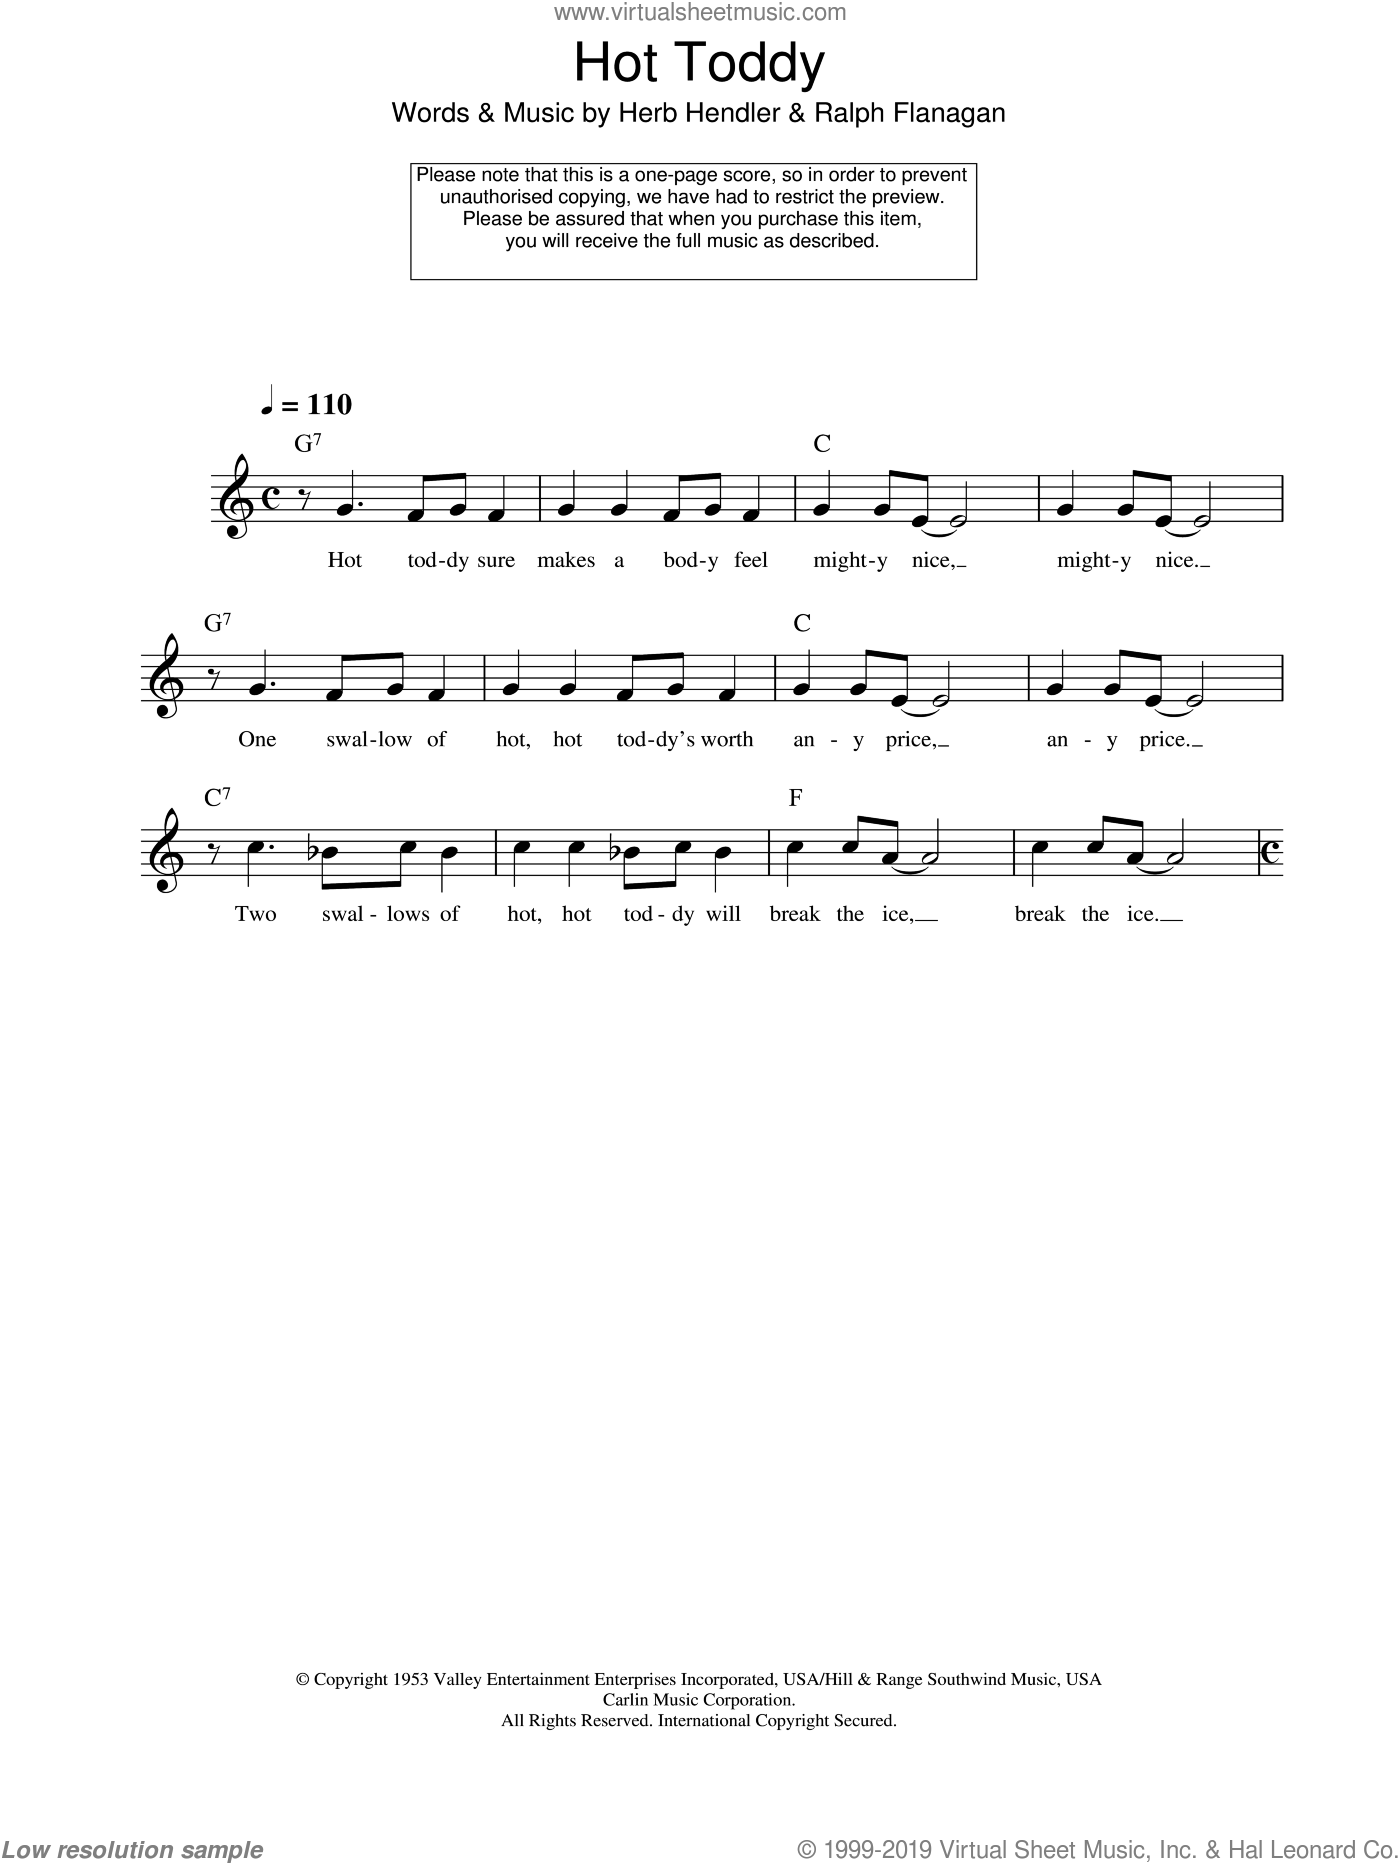 Hot Toddy sheet music for voice and other instruments (fake book) by Ralph Flanagan and Herb Hendler, intermediate skill level